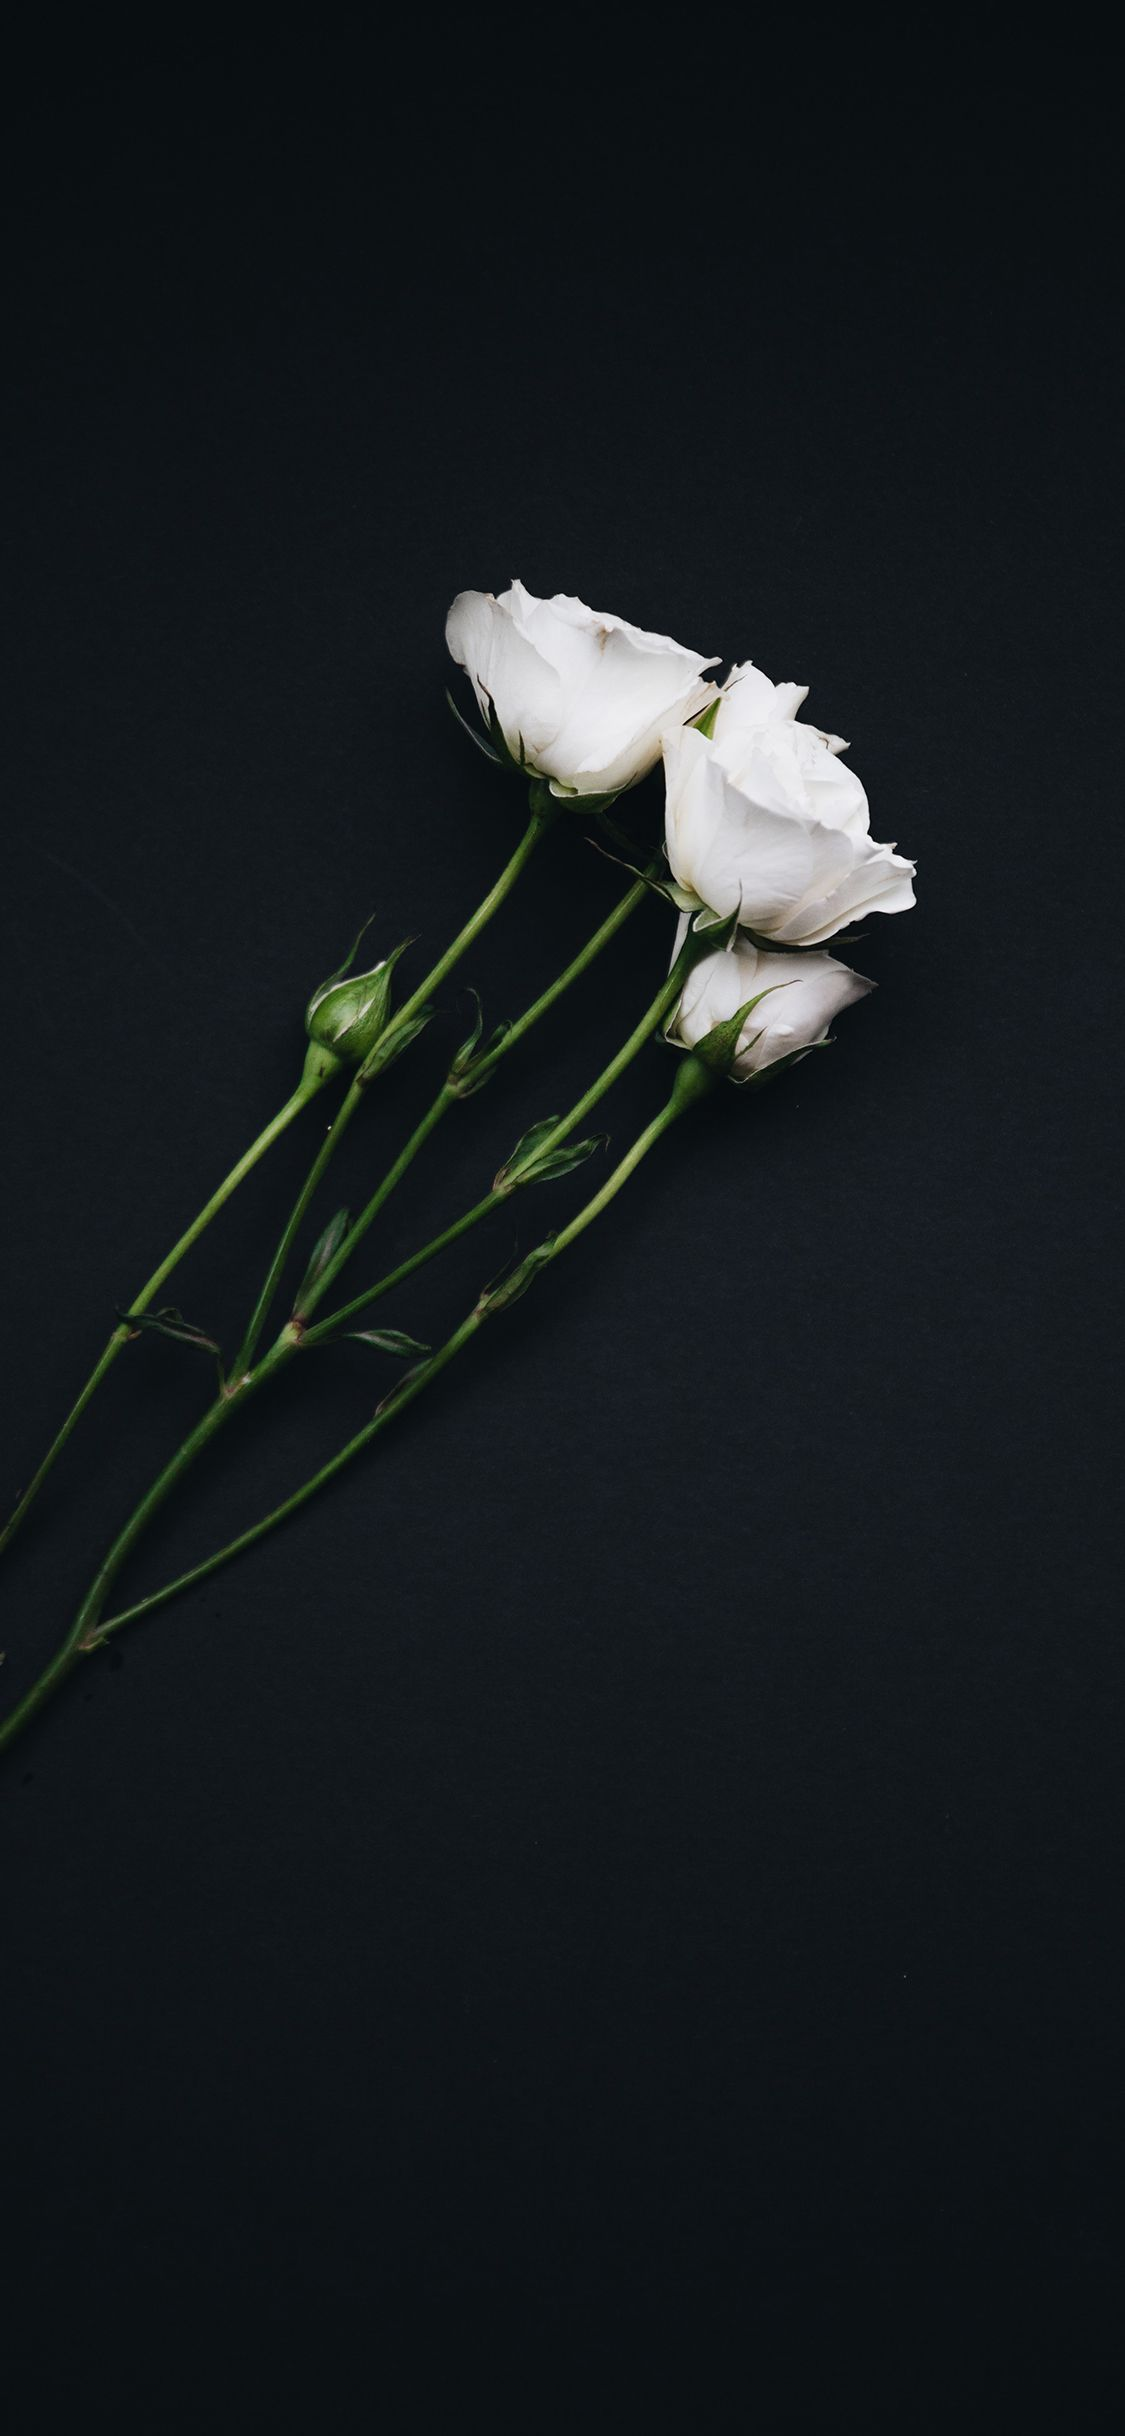 49 Beautiful Rose Iphone Wallpaper Hd Quality In 2020 Iphone Wallpaper Yellow Wallpaper Iphone Roses Black Backgrounds